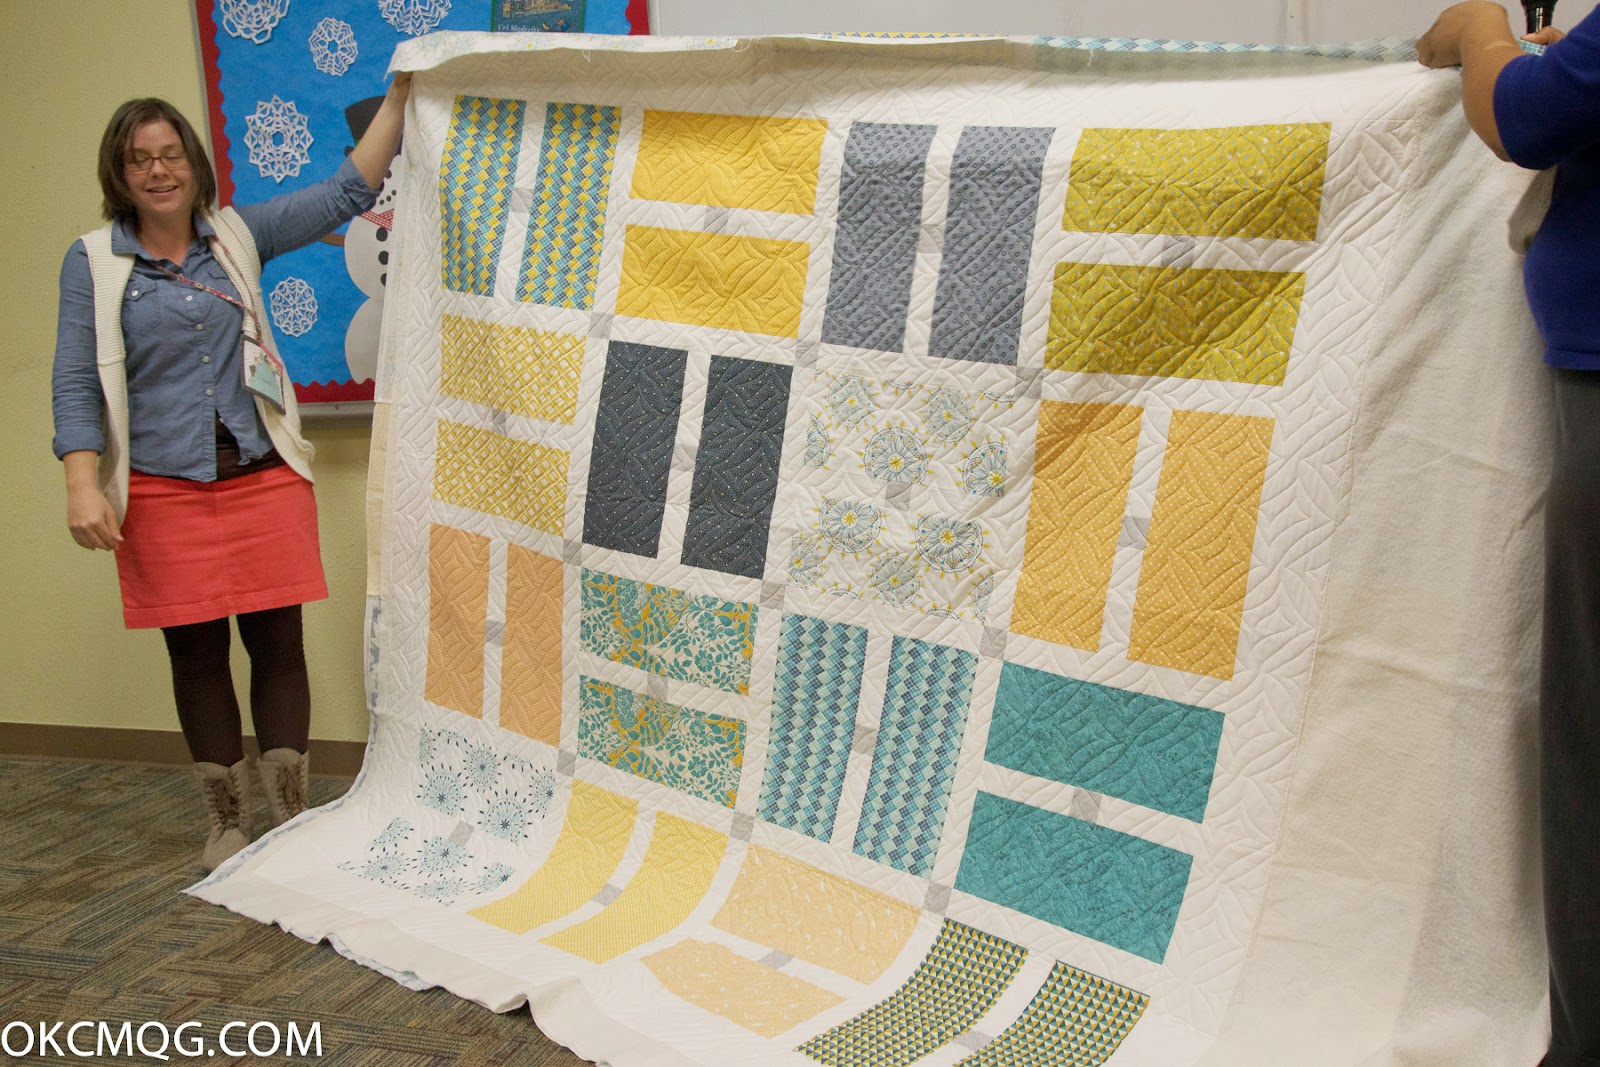 Okc Modern Quilters Meeting Wrap Up February 2015